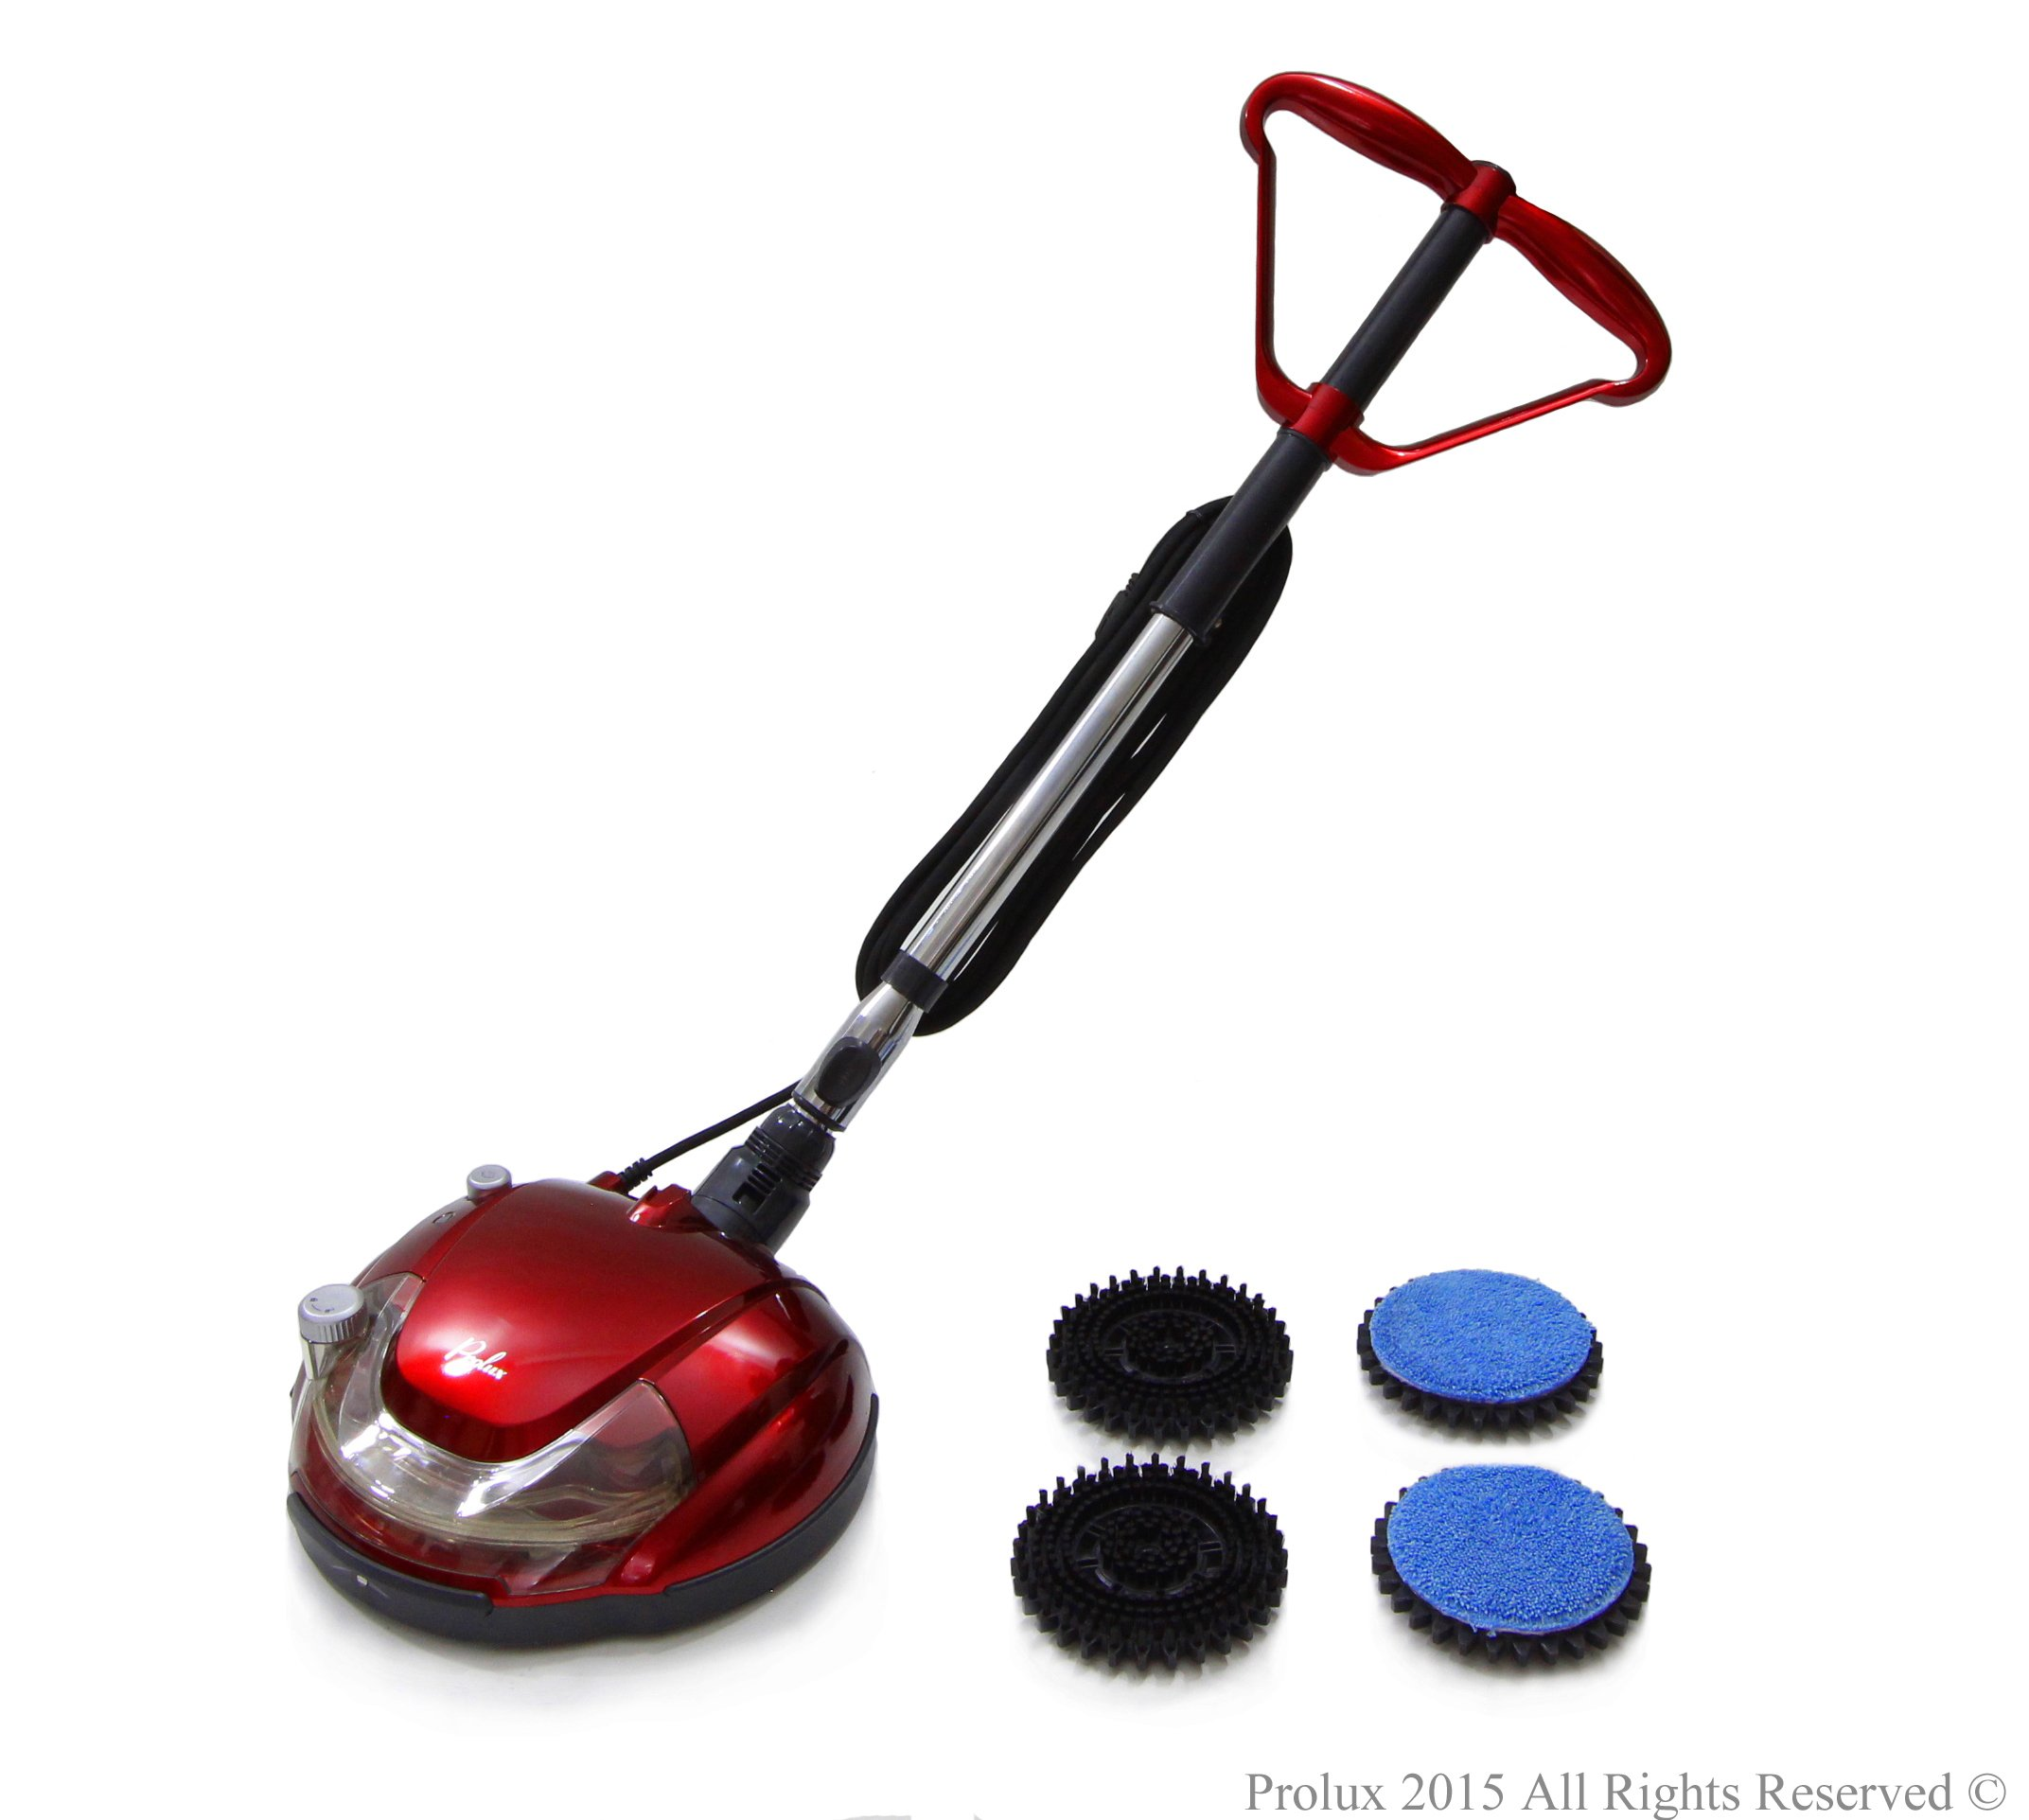 Prolux Hard Floor Cleaner Polisher Buffer Hardwood Grout Tile Scrubber Waxer Floor Mop by Prolux (Image #6)